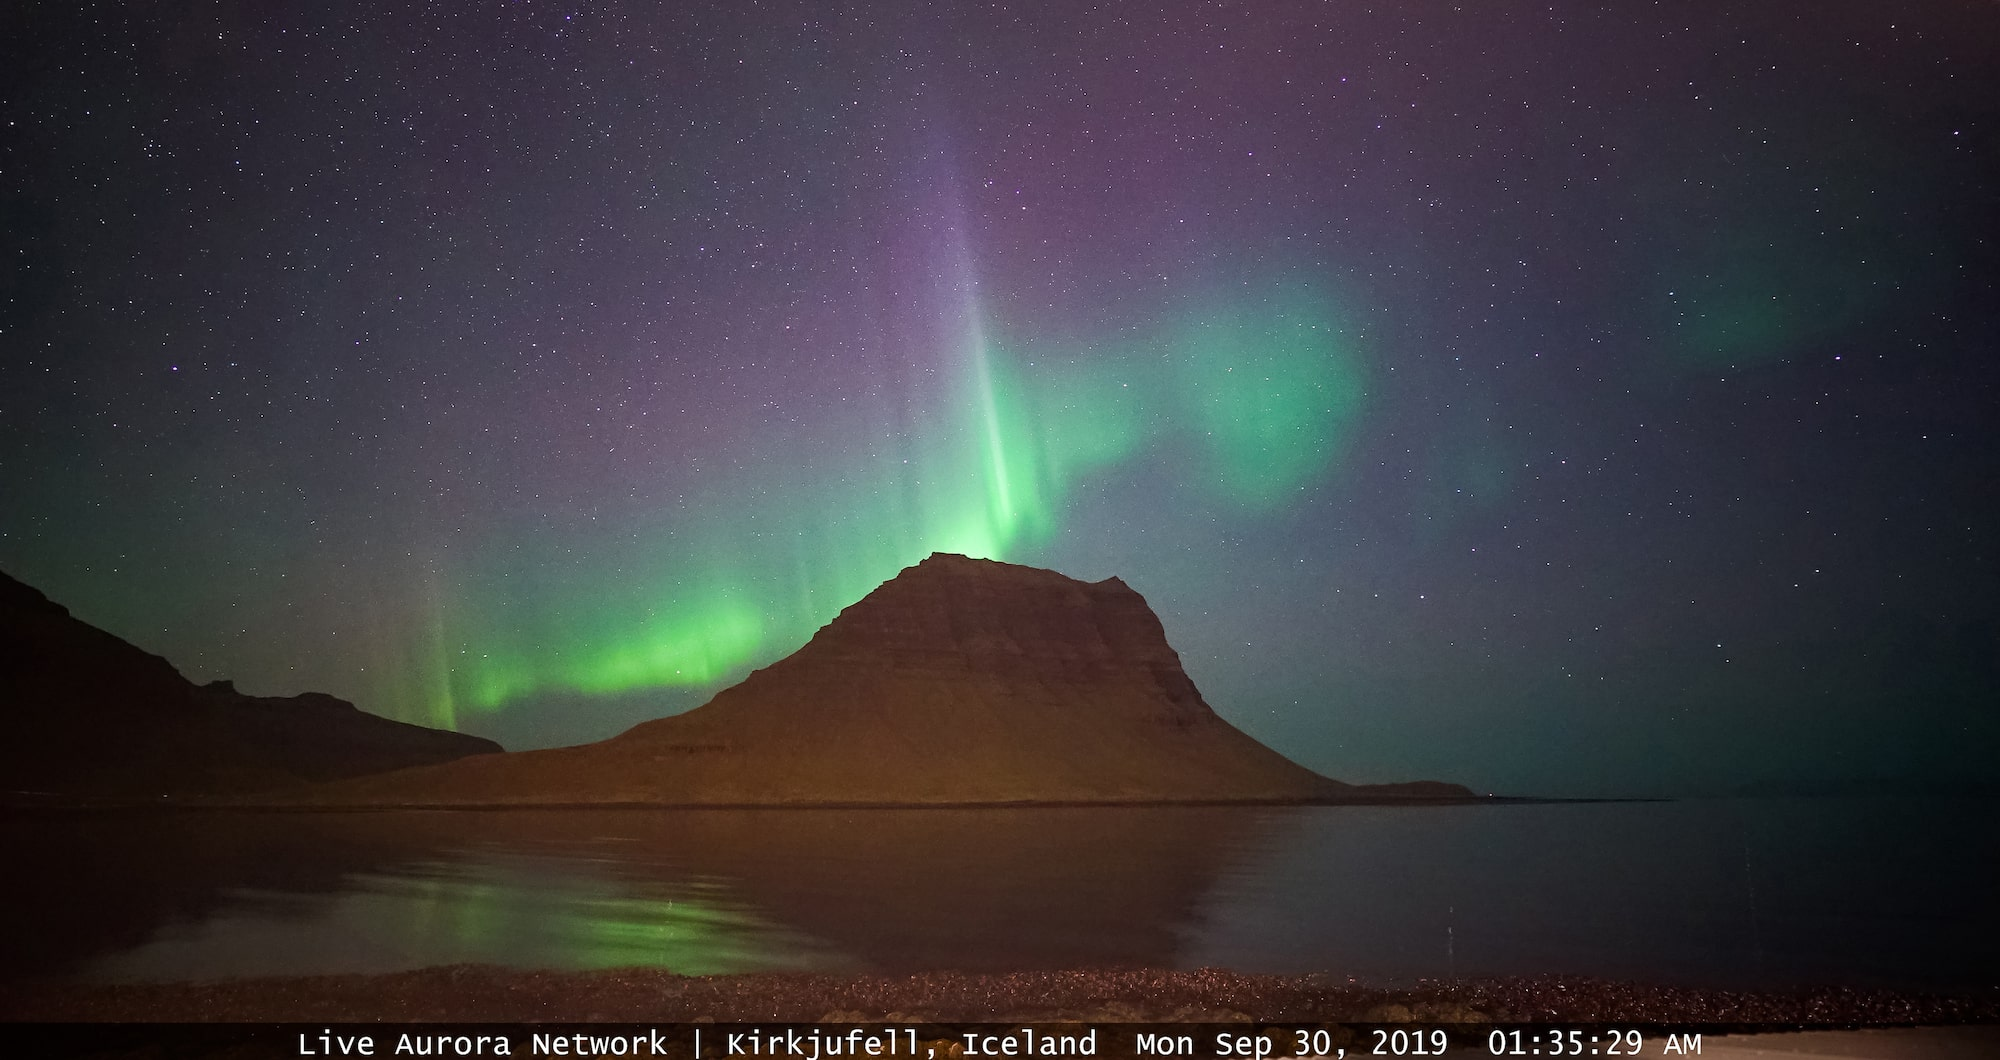 steve collins sony alpha 7SII feed from live aurora network shows a soft green light over a mountain